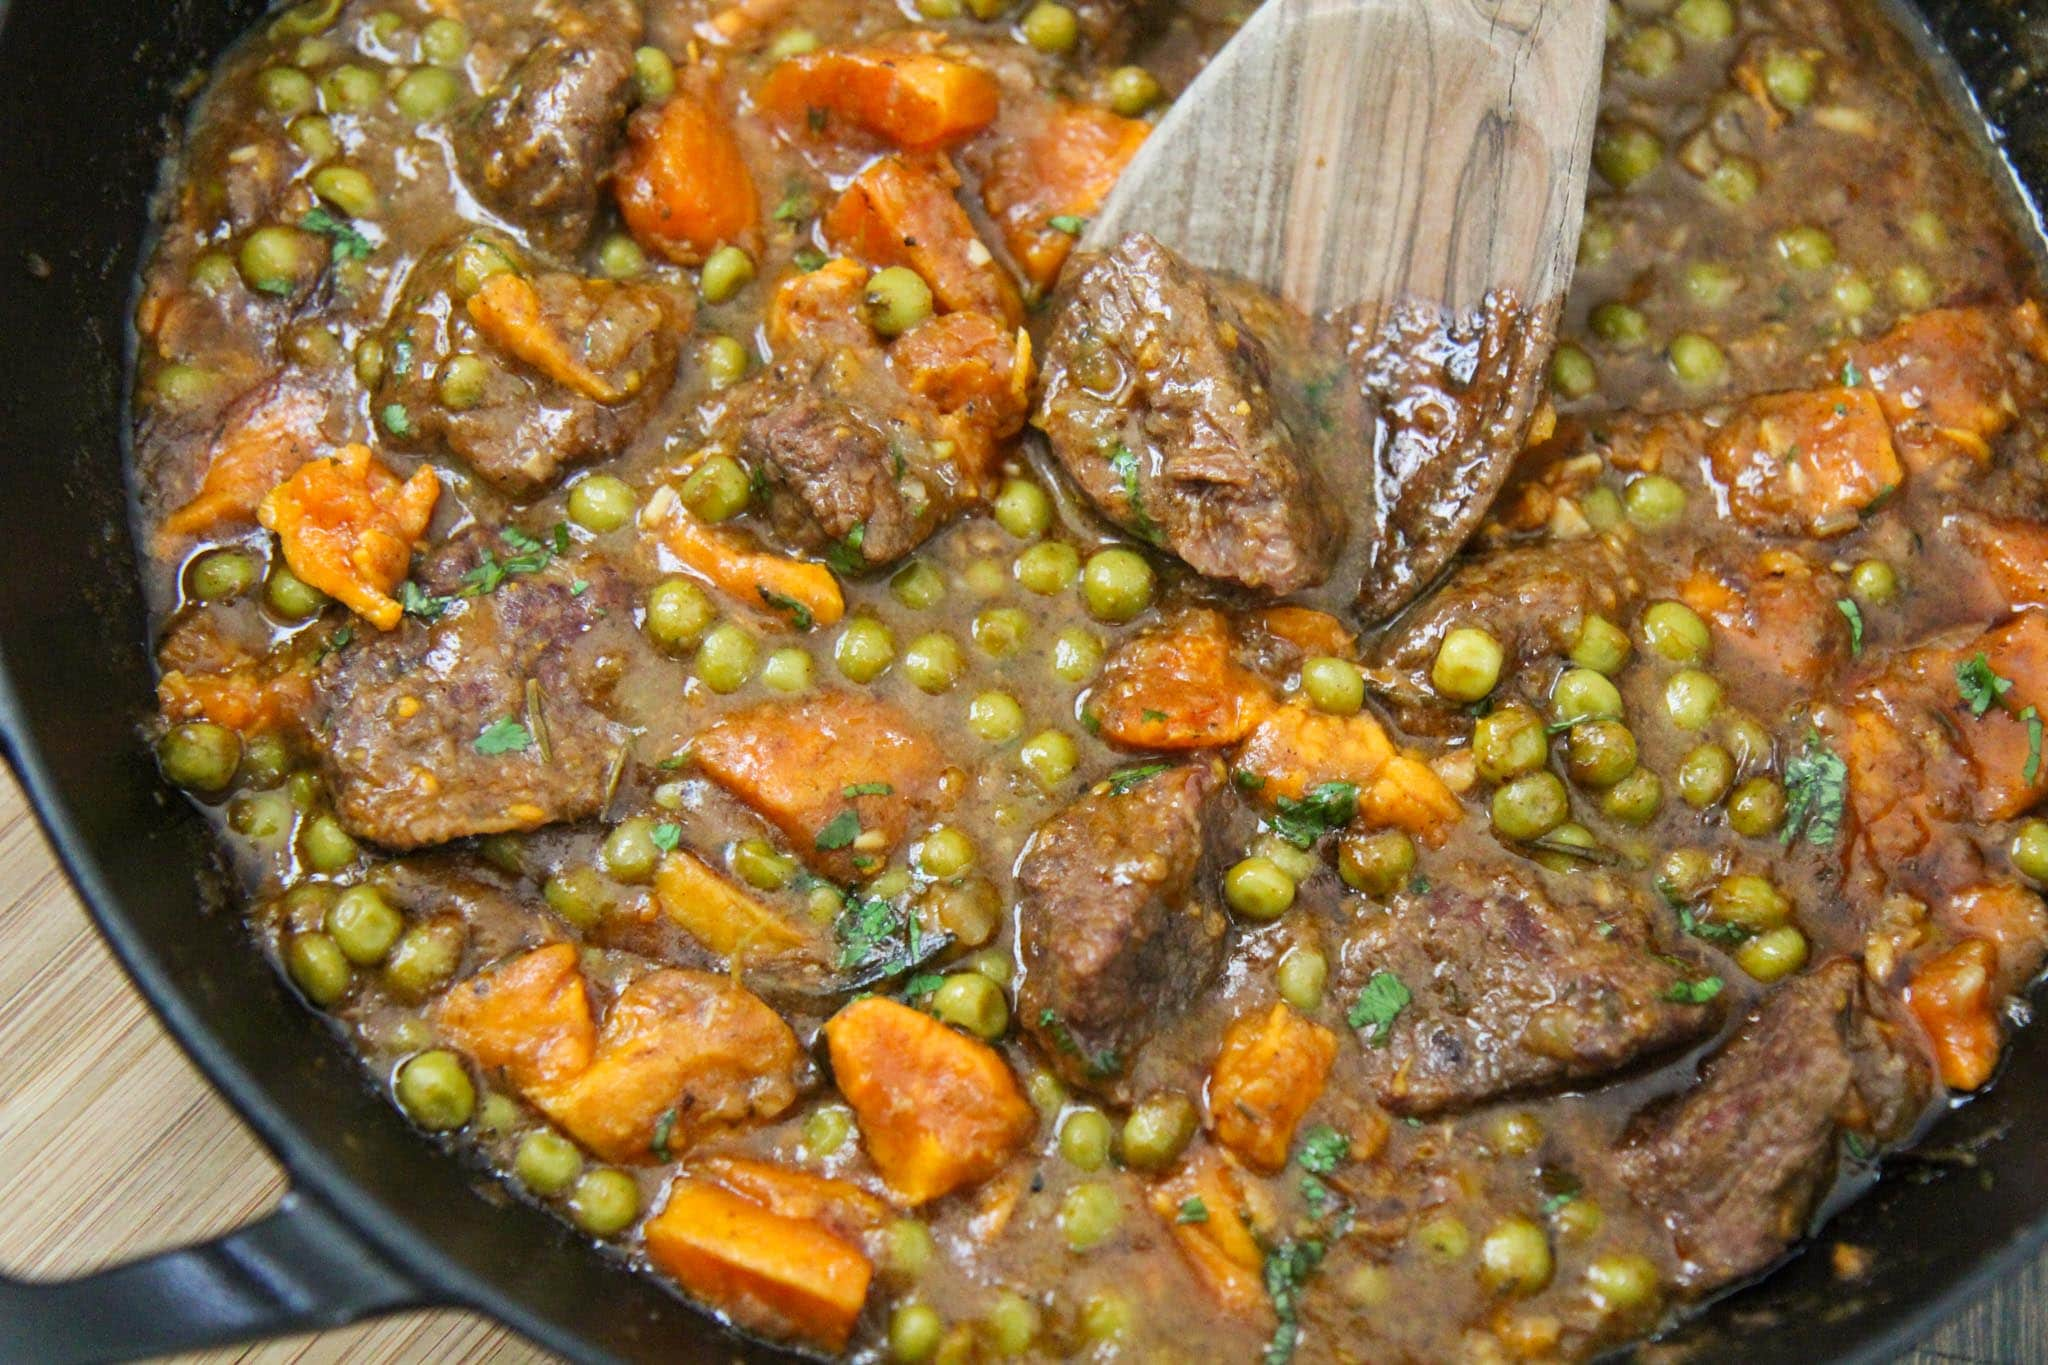 beef and sweet potatoes in a black skillet.